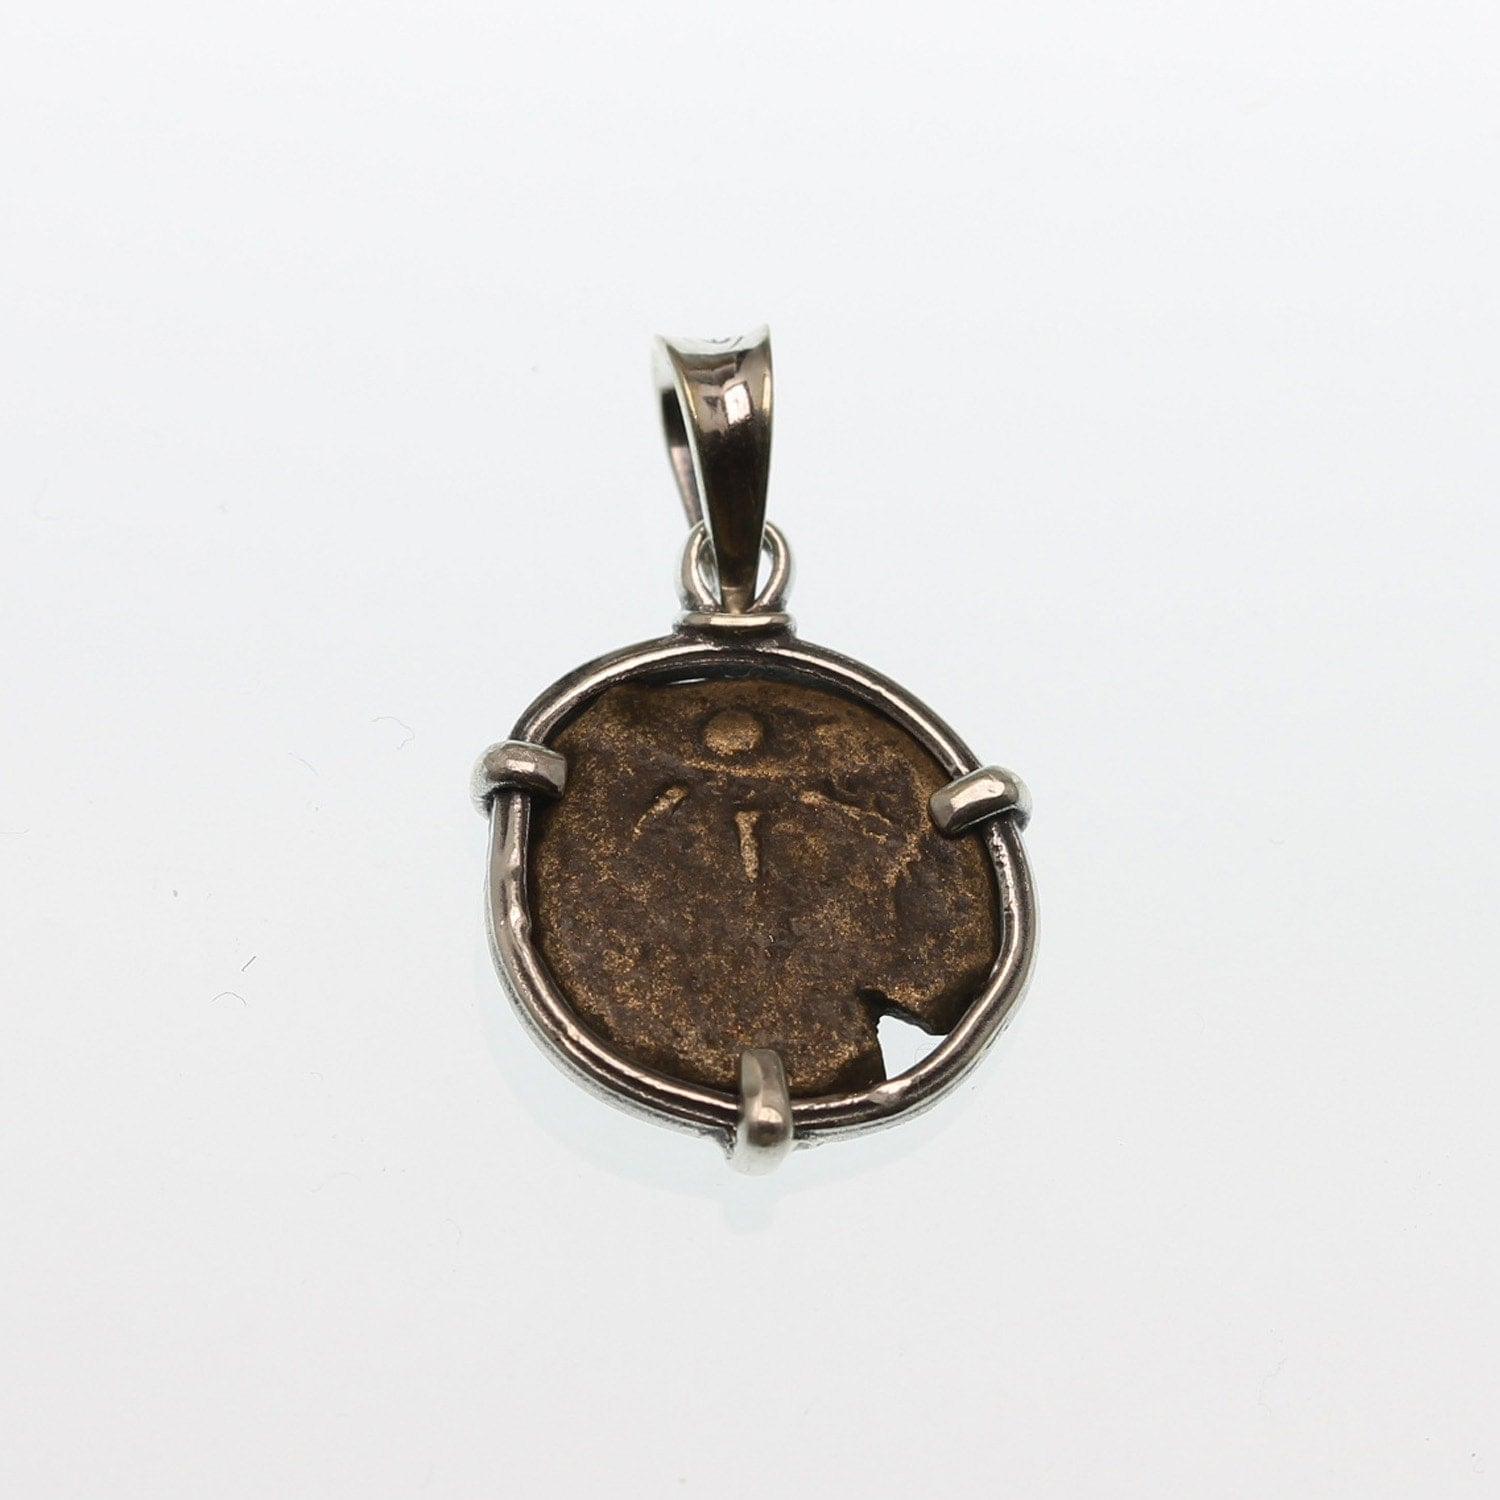 ancient coin pendant sterling silver pendant with authentic